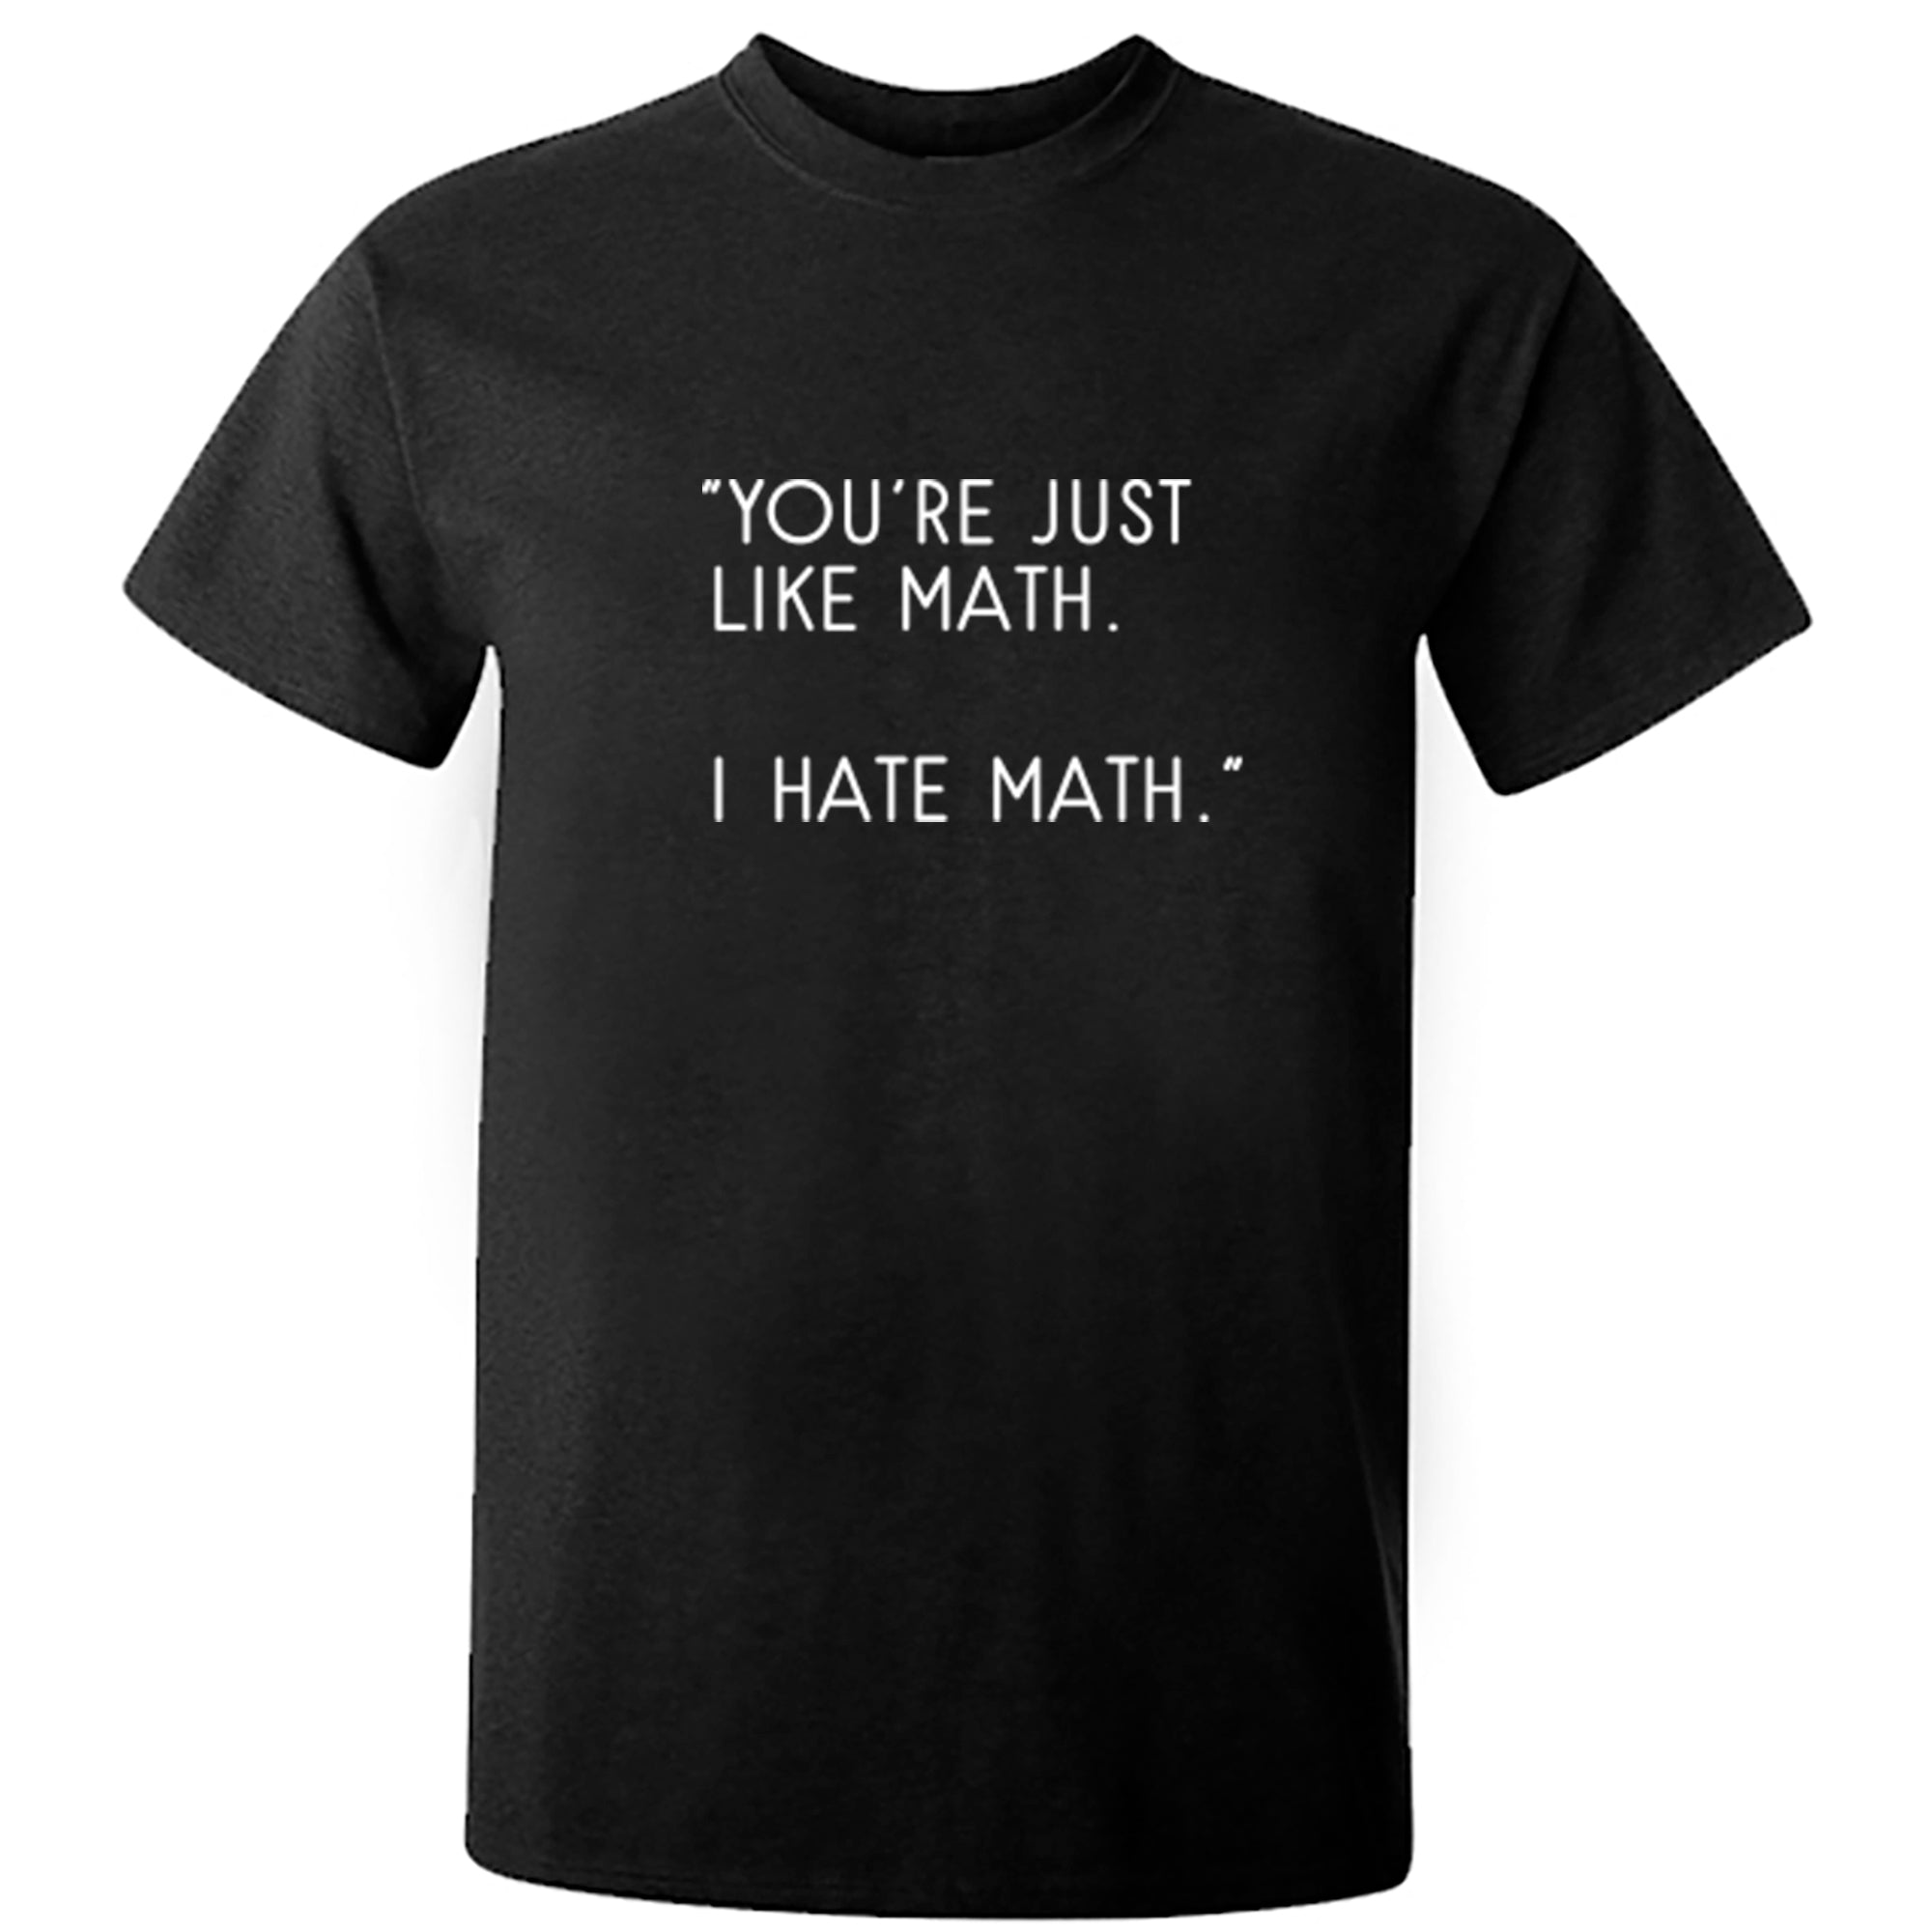 """You're Just Like Math. I Hate Math."" Unisex Fit T-Shirt S0816 - Illustrated Identity Ltd."